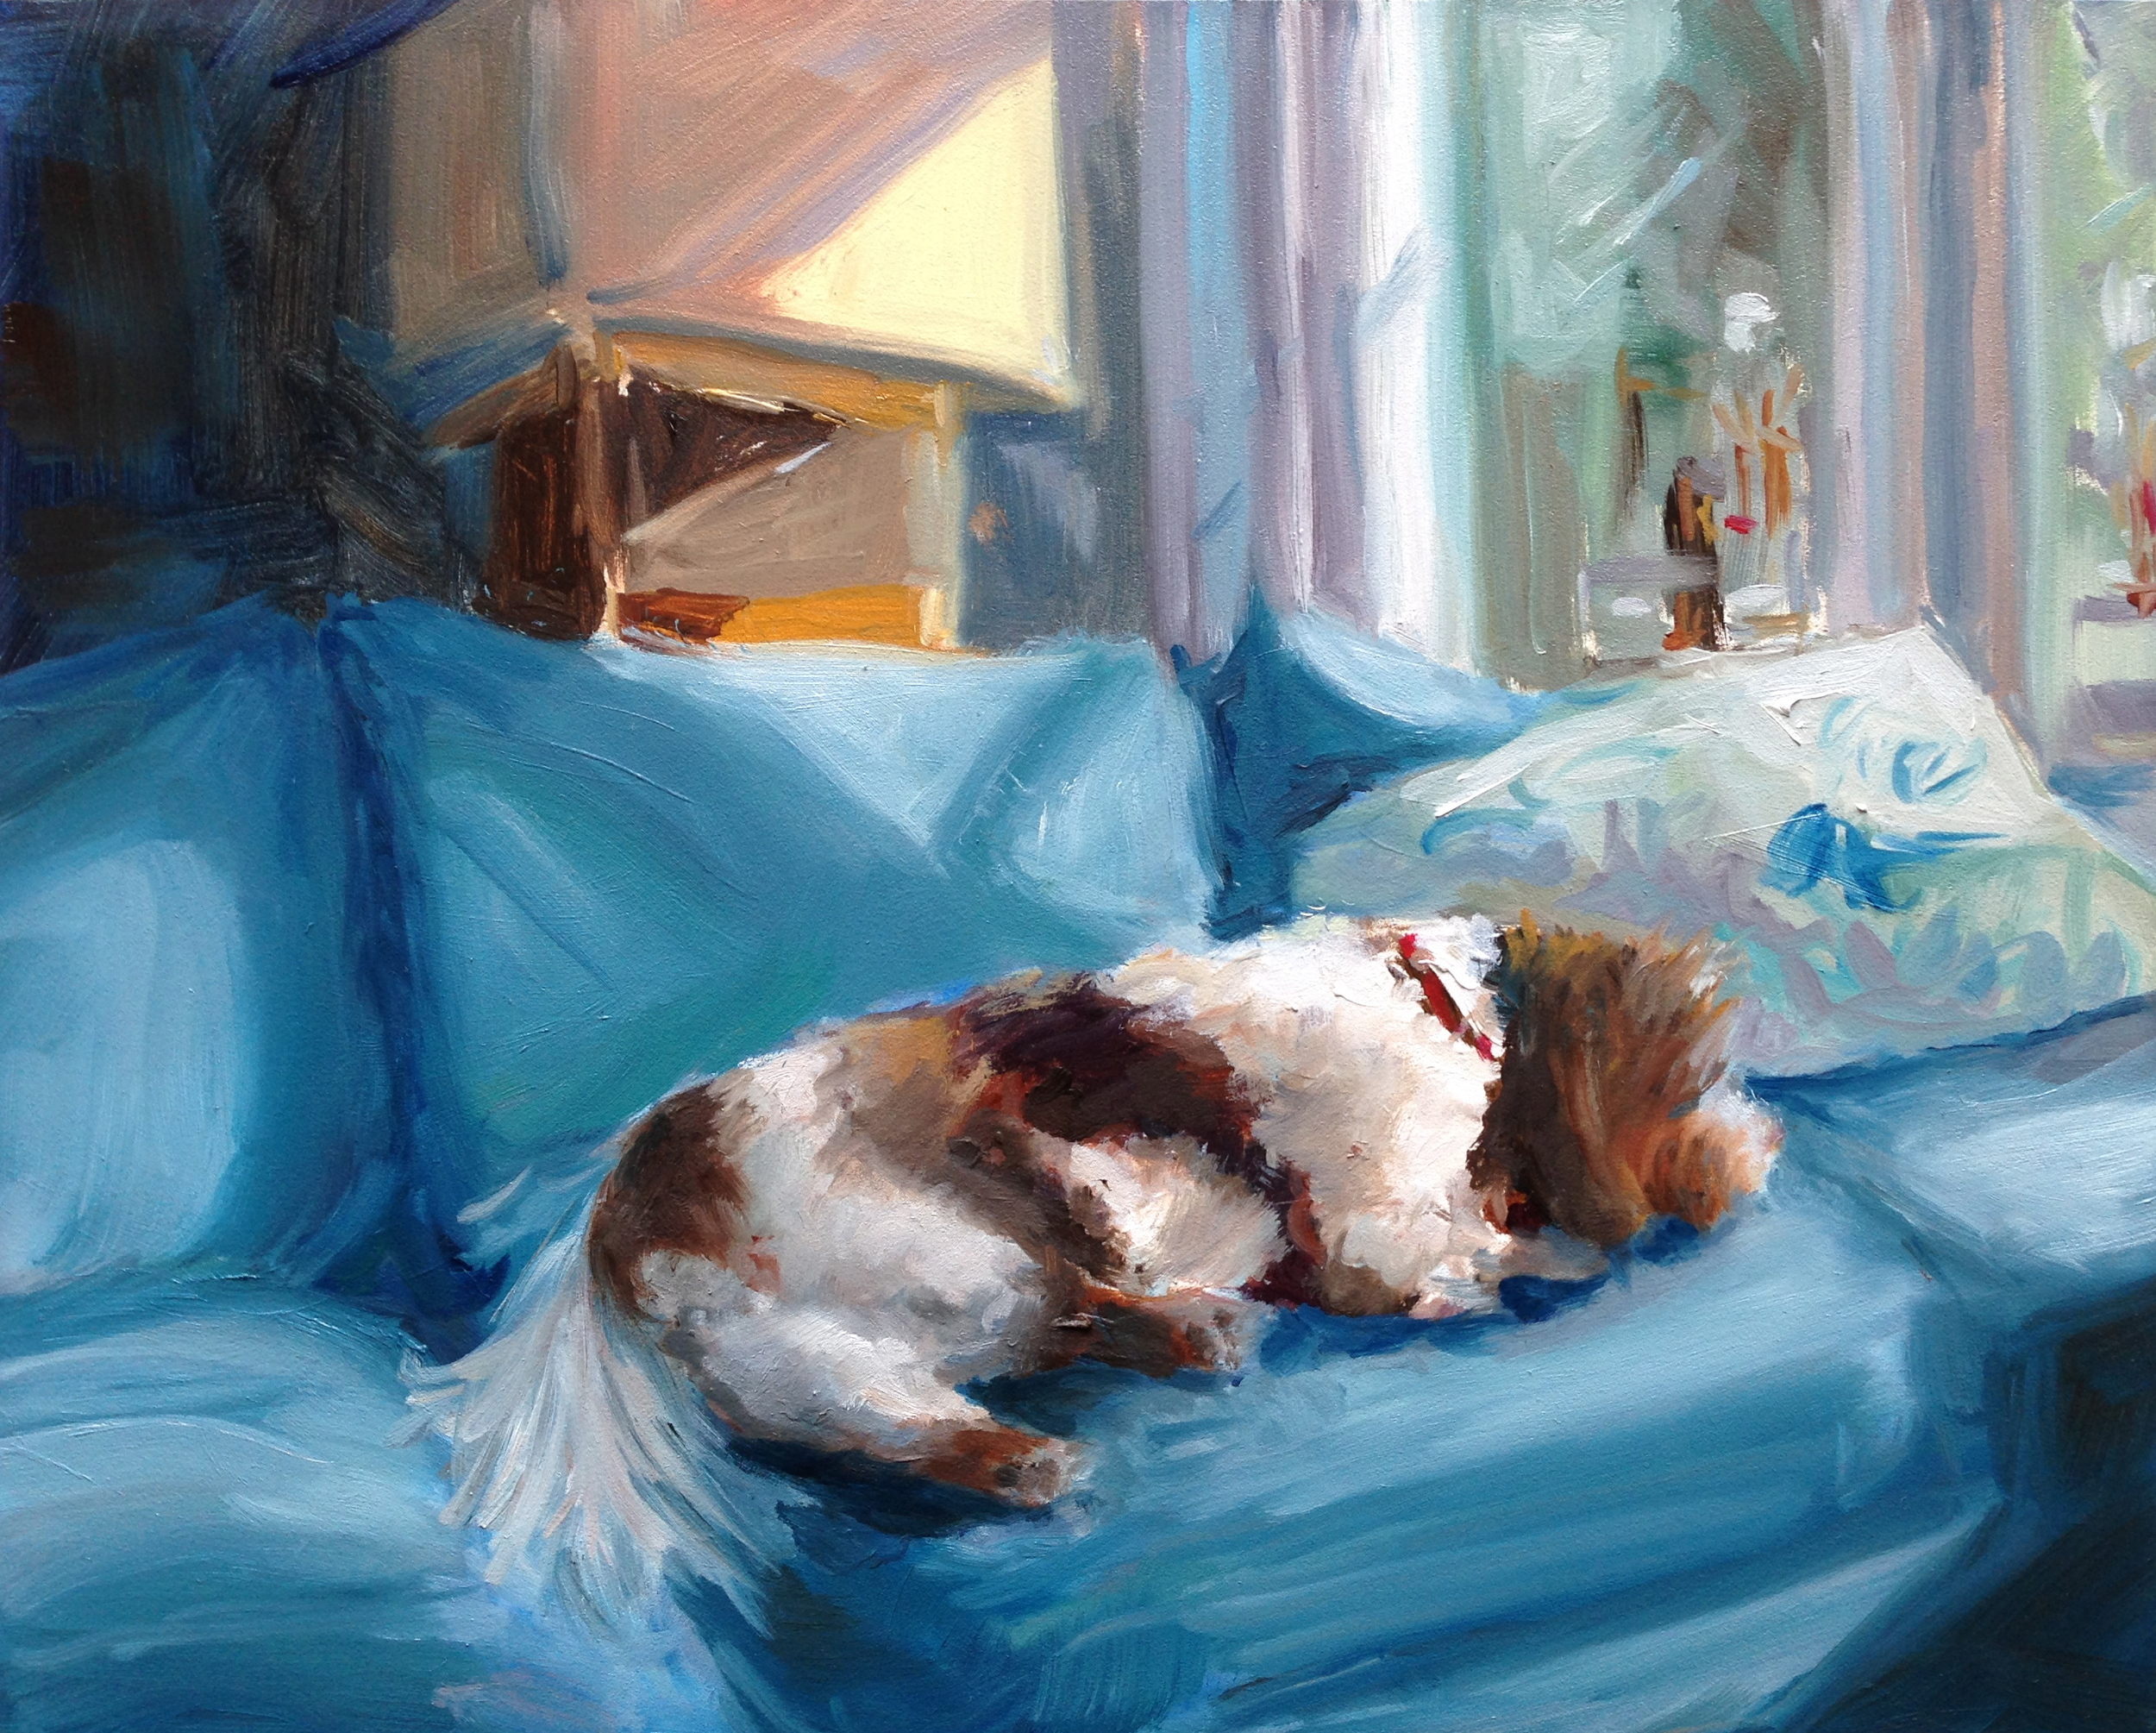 Petey in Repose  Acrylic on board, 8x10/ Private collection